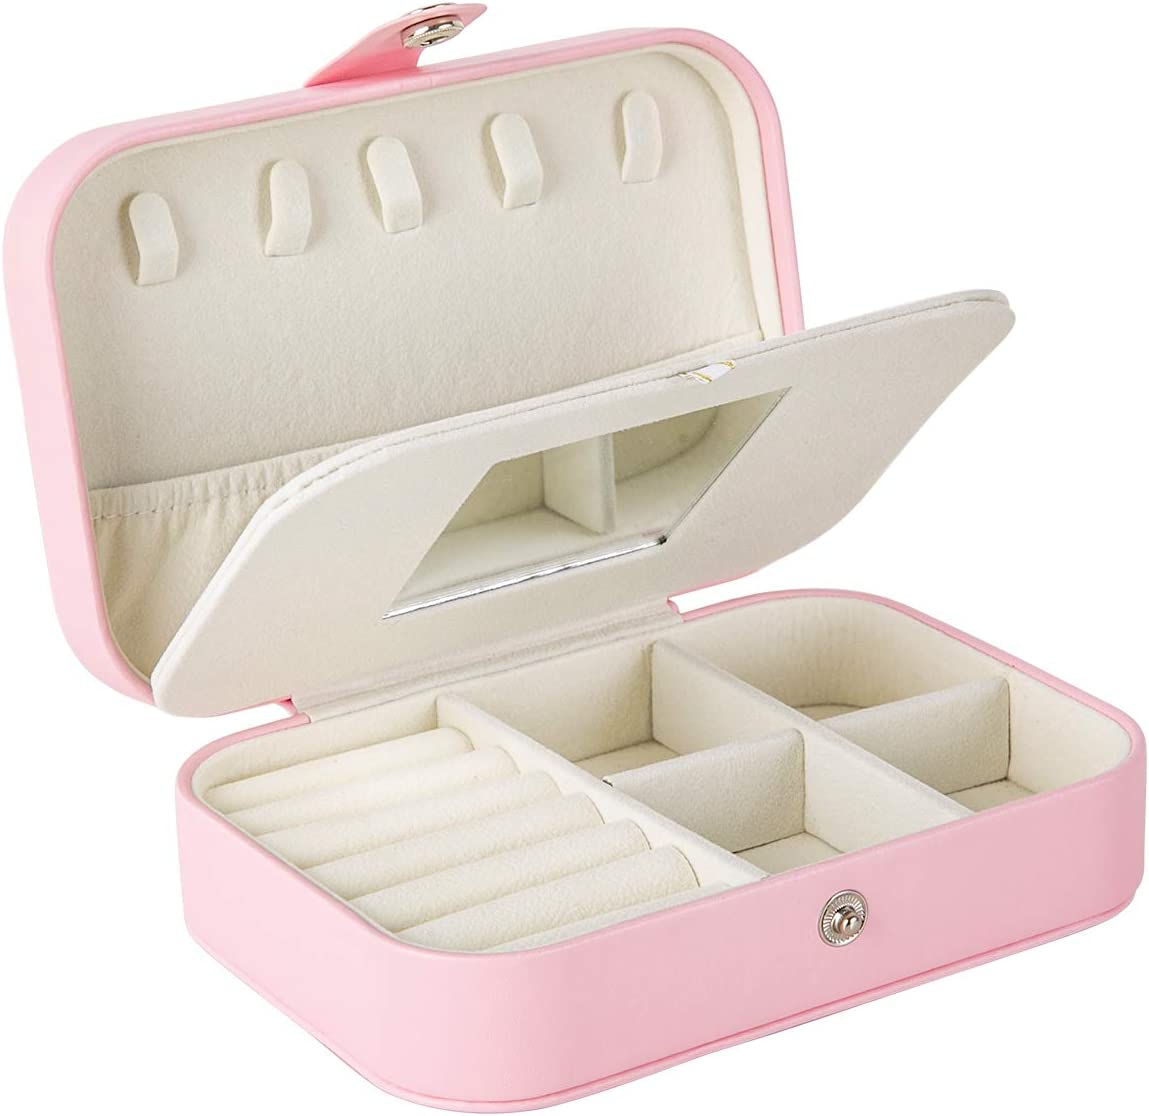 WINCANG New product type Small Jewelry High material Box Organizer Doubel Travel Layer